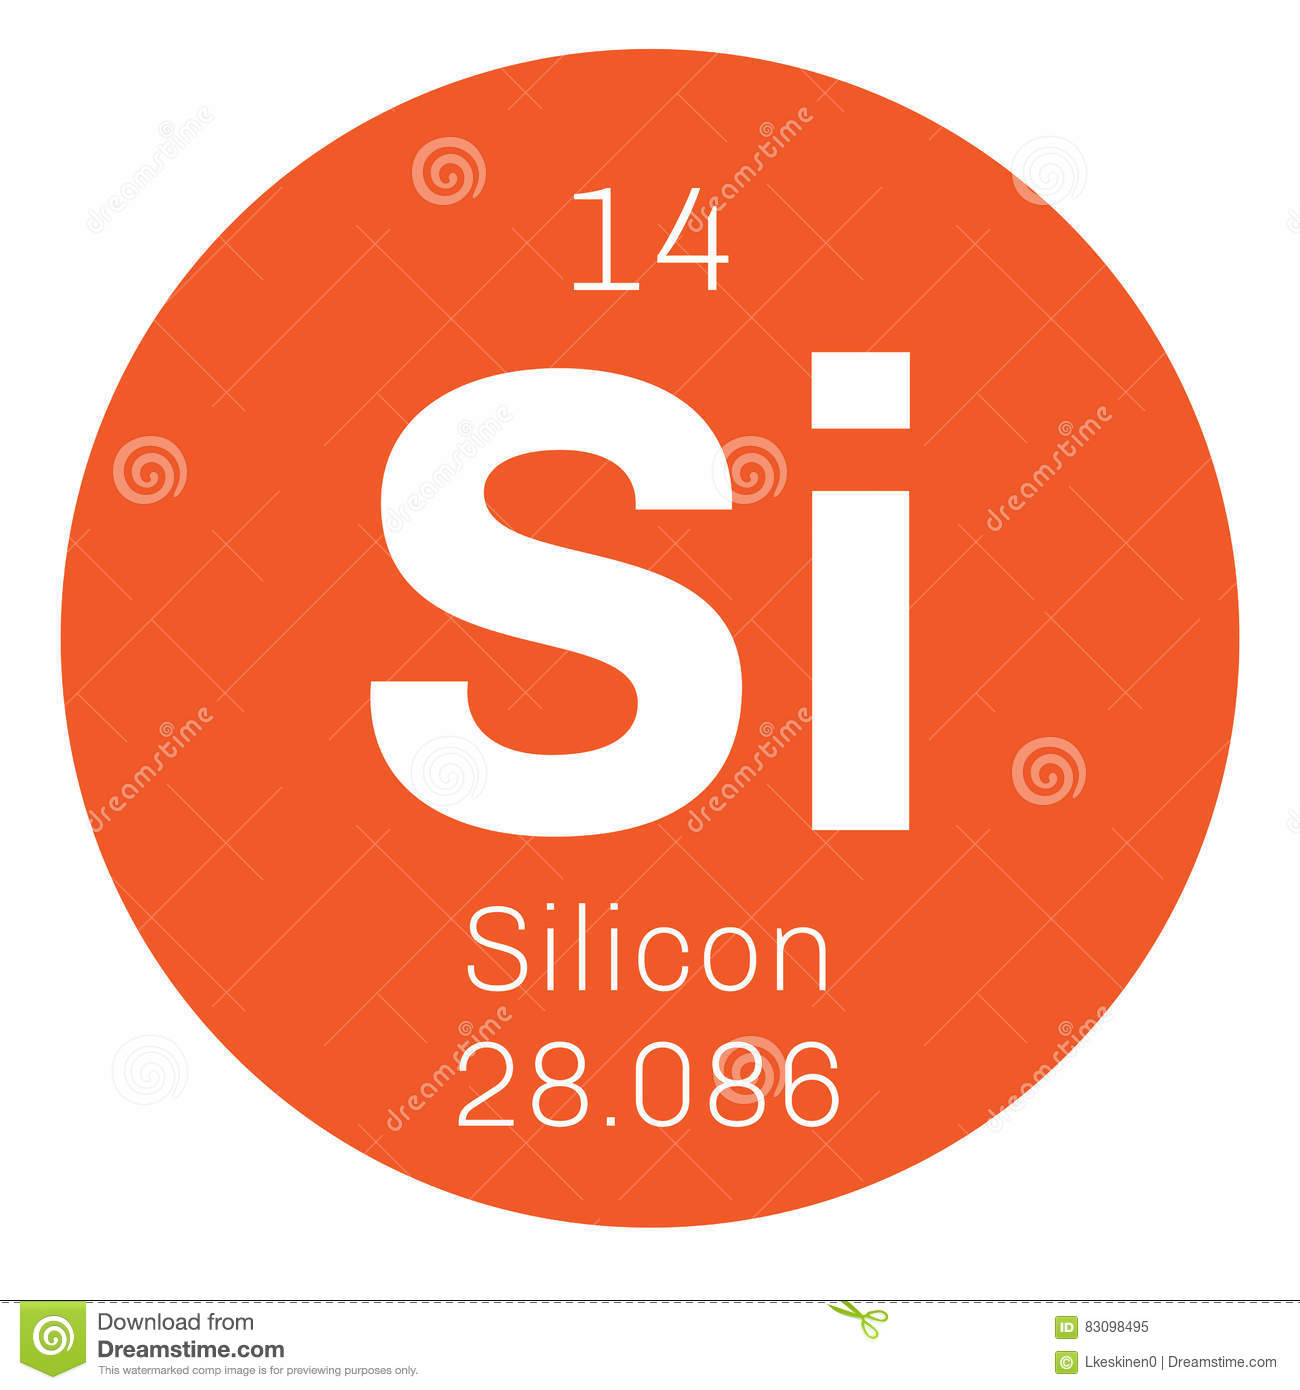 Silicon element stock illustrations 850 silicon element stock silicon element stock illustrations 850 silicon element stock illustrations vectors clipart dreamstime biocorpaavc Image collections